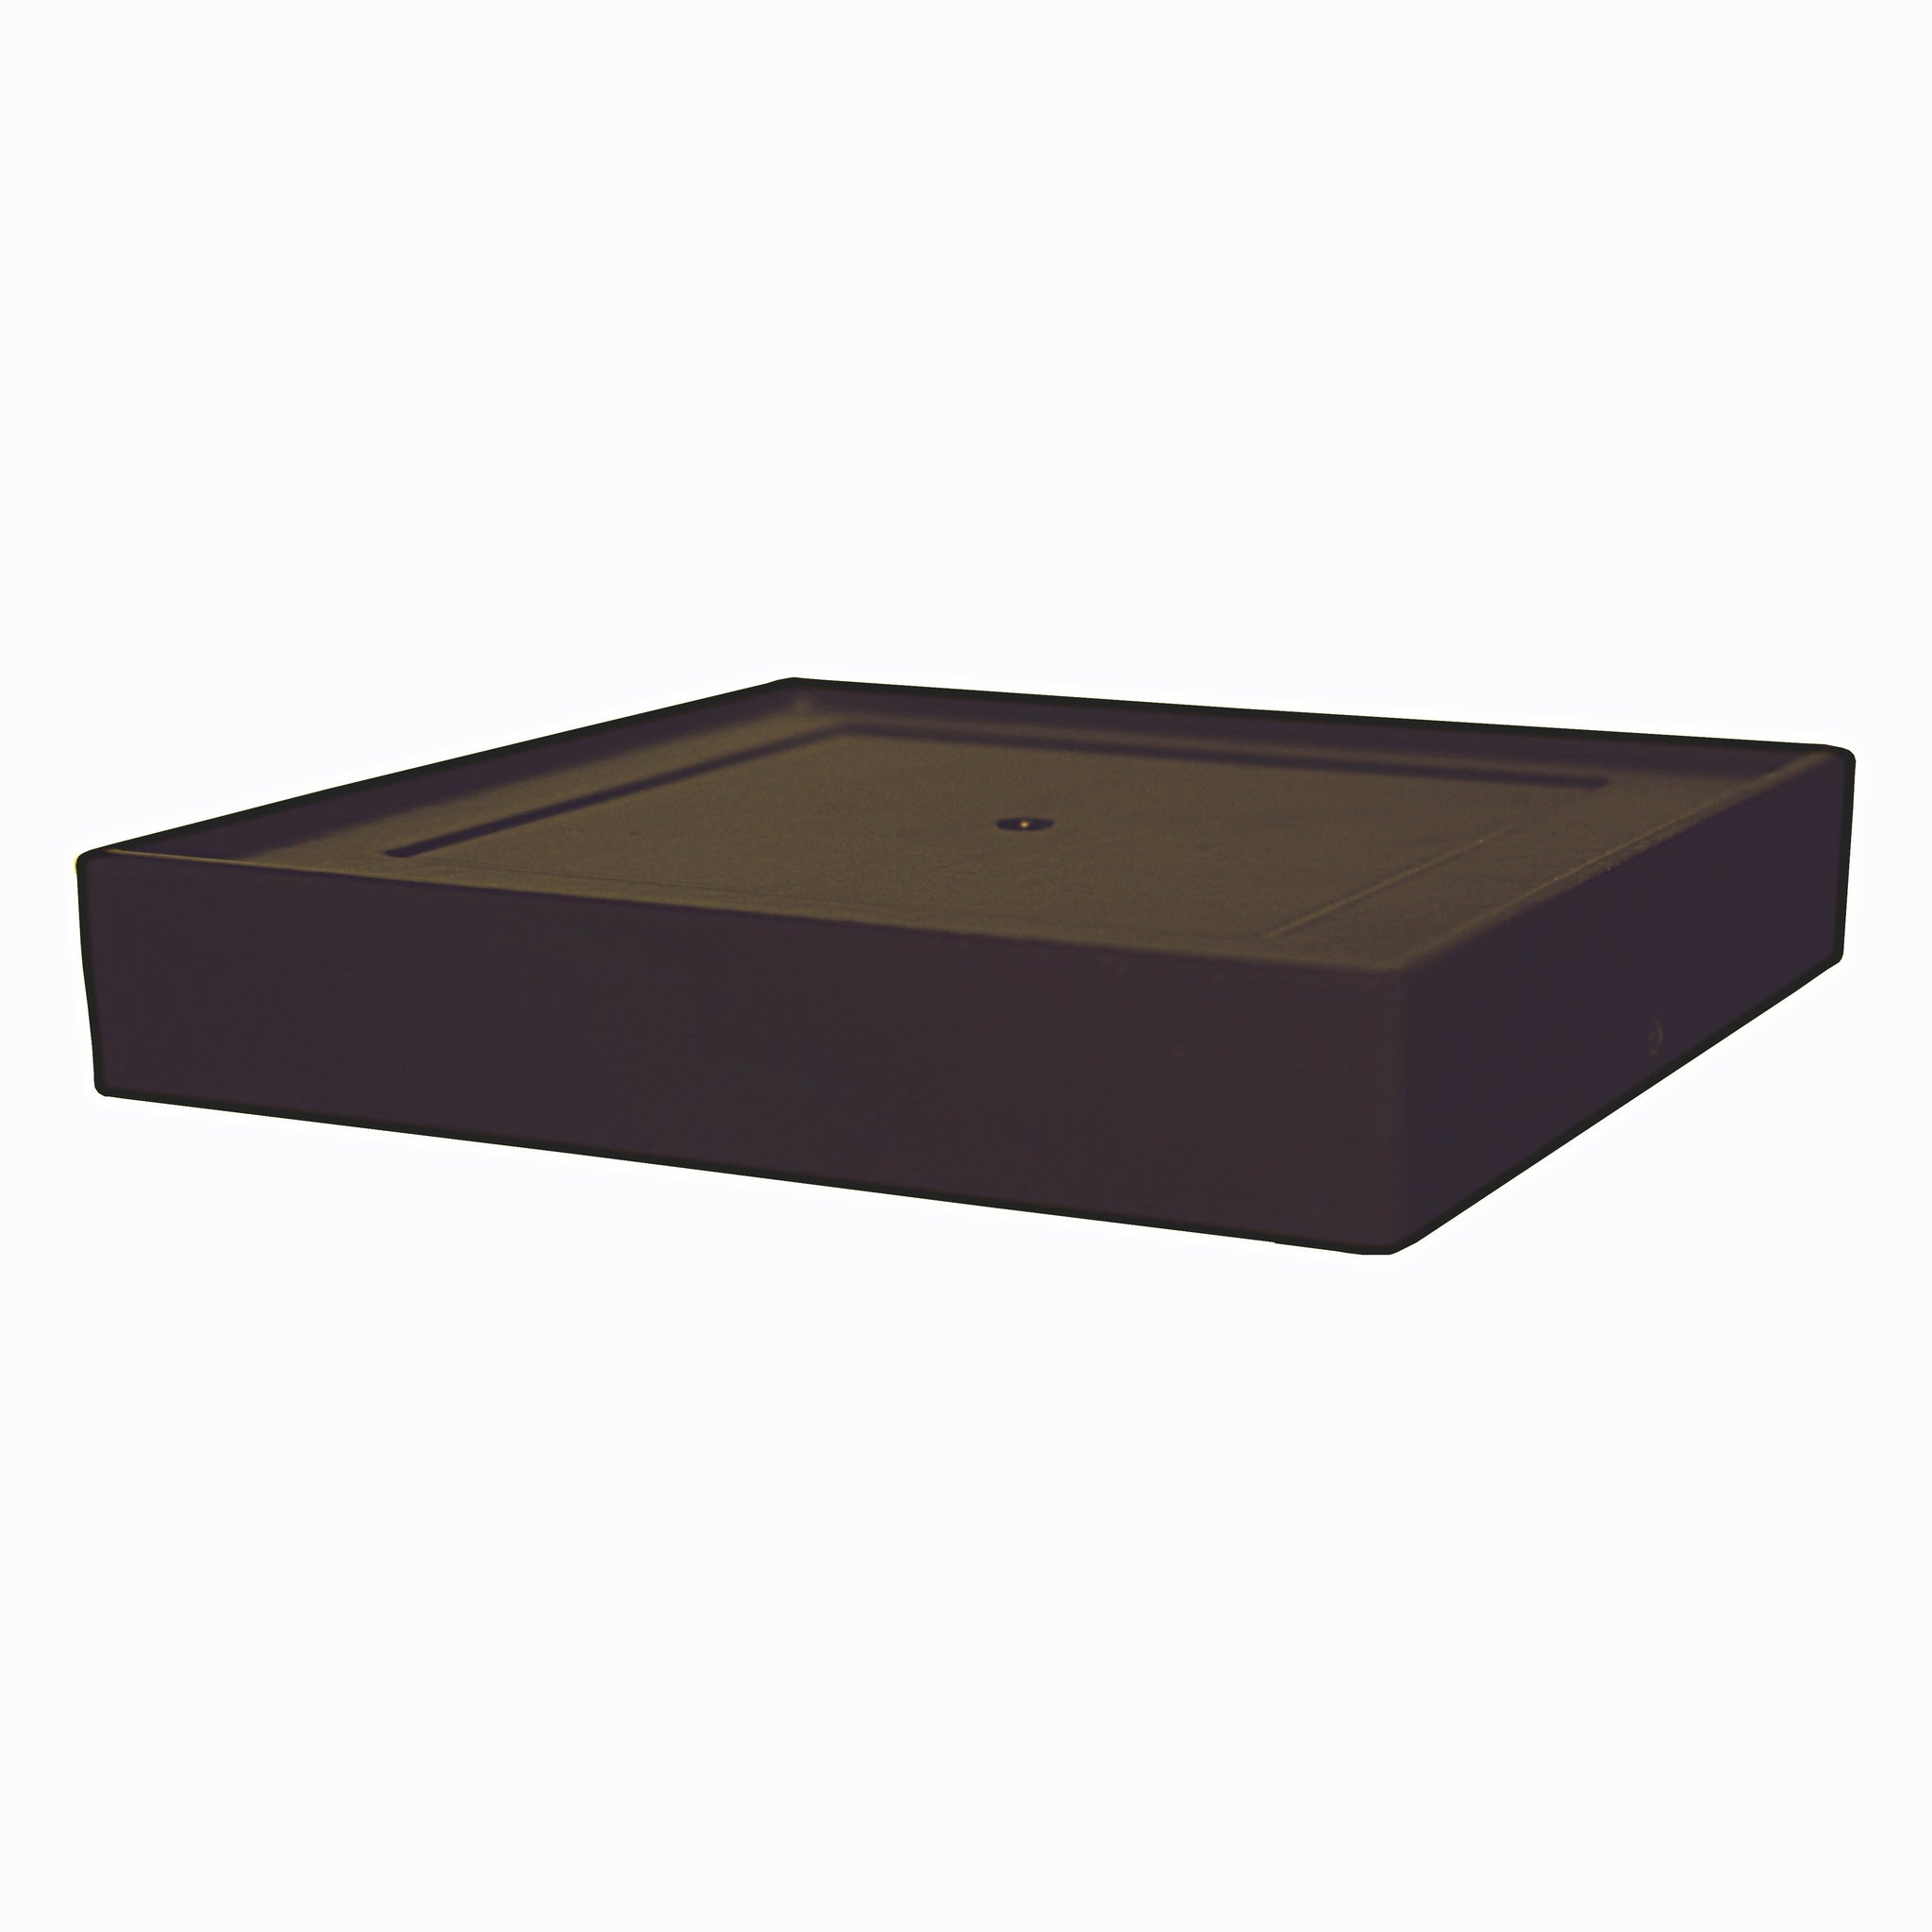 4.5x4.5 BASE IMPERIAL ALUMINUM - BRONZE